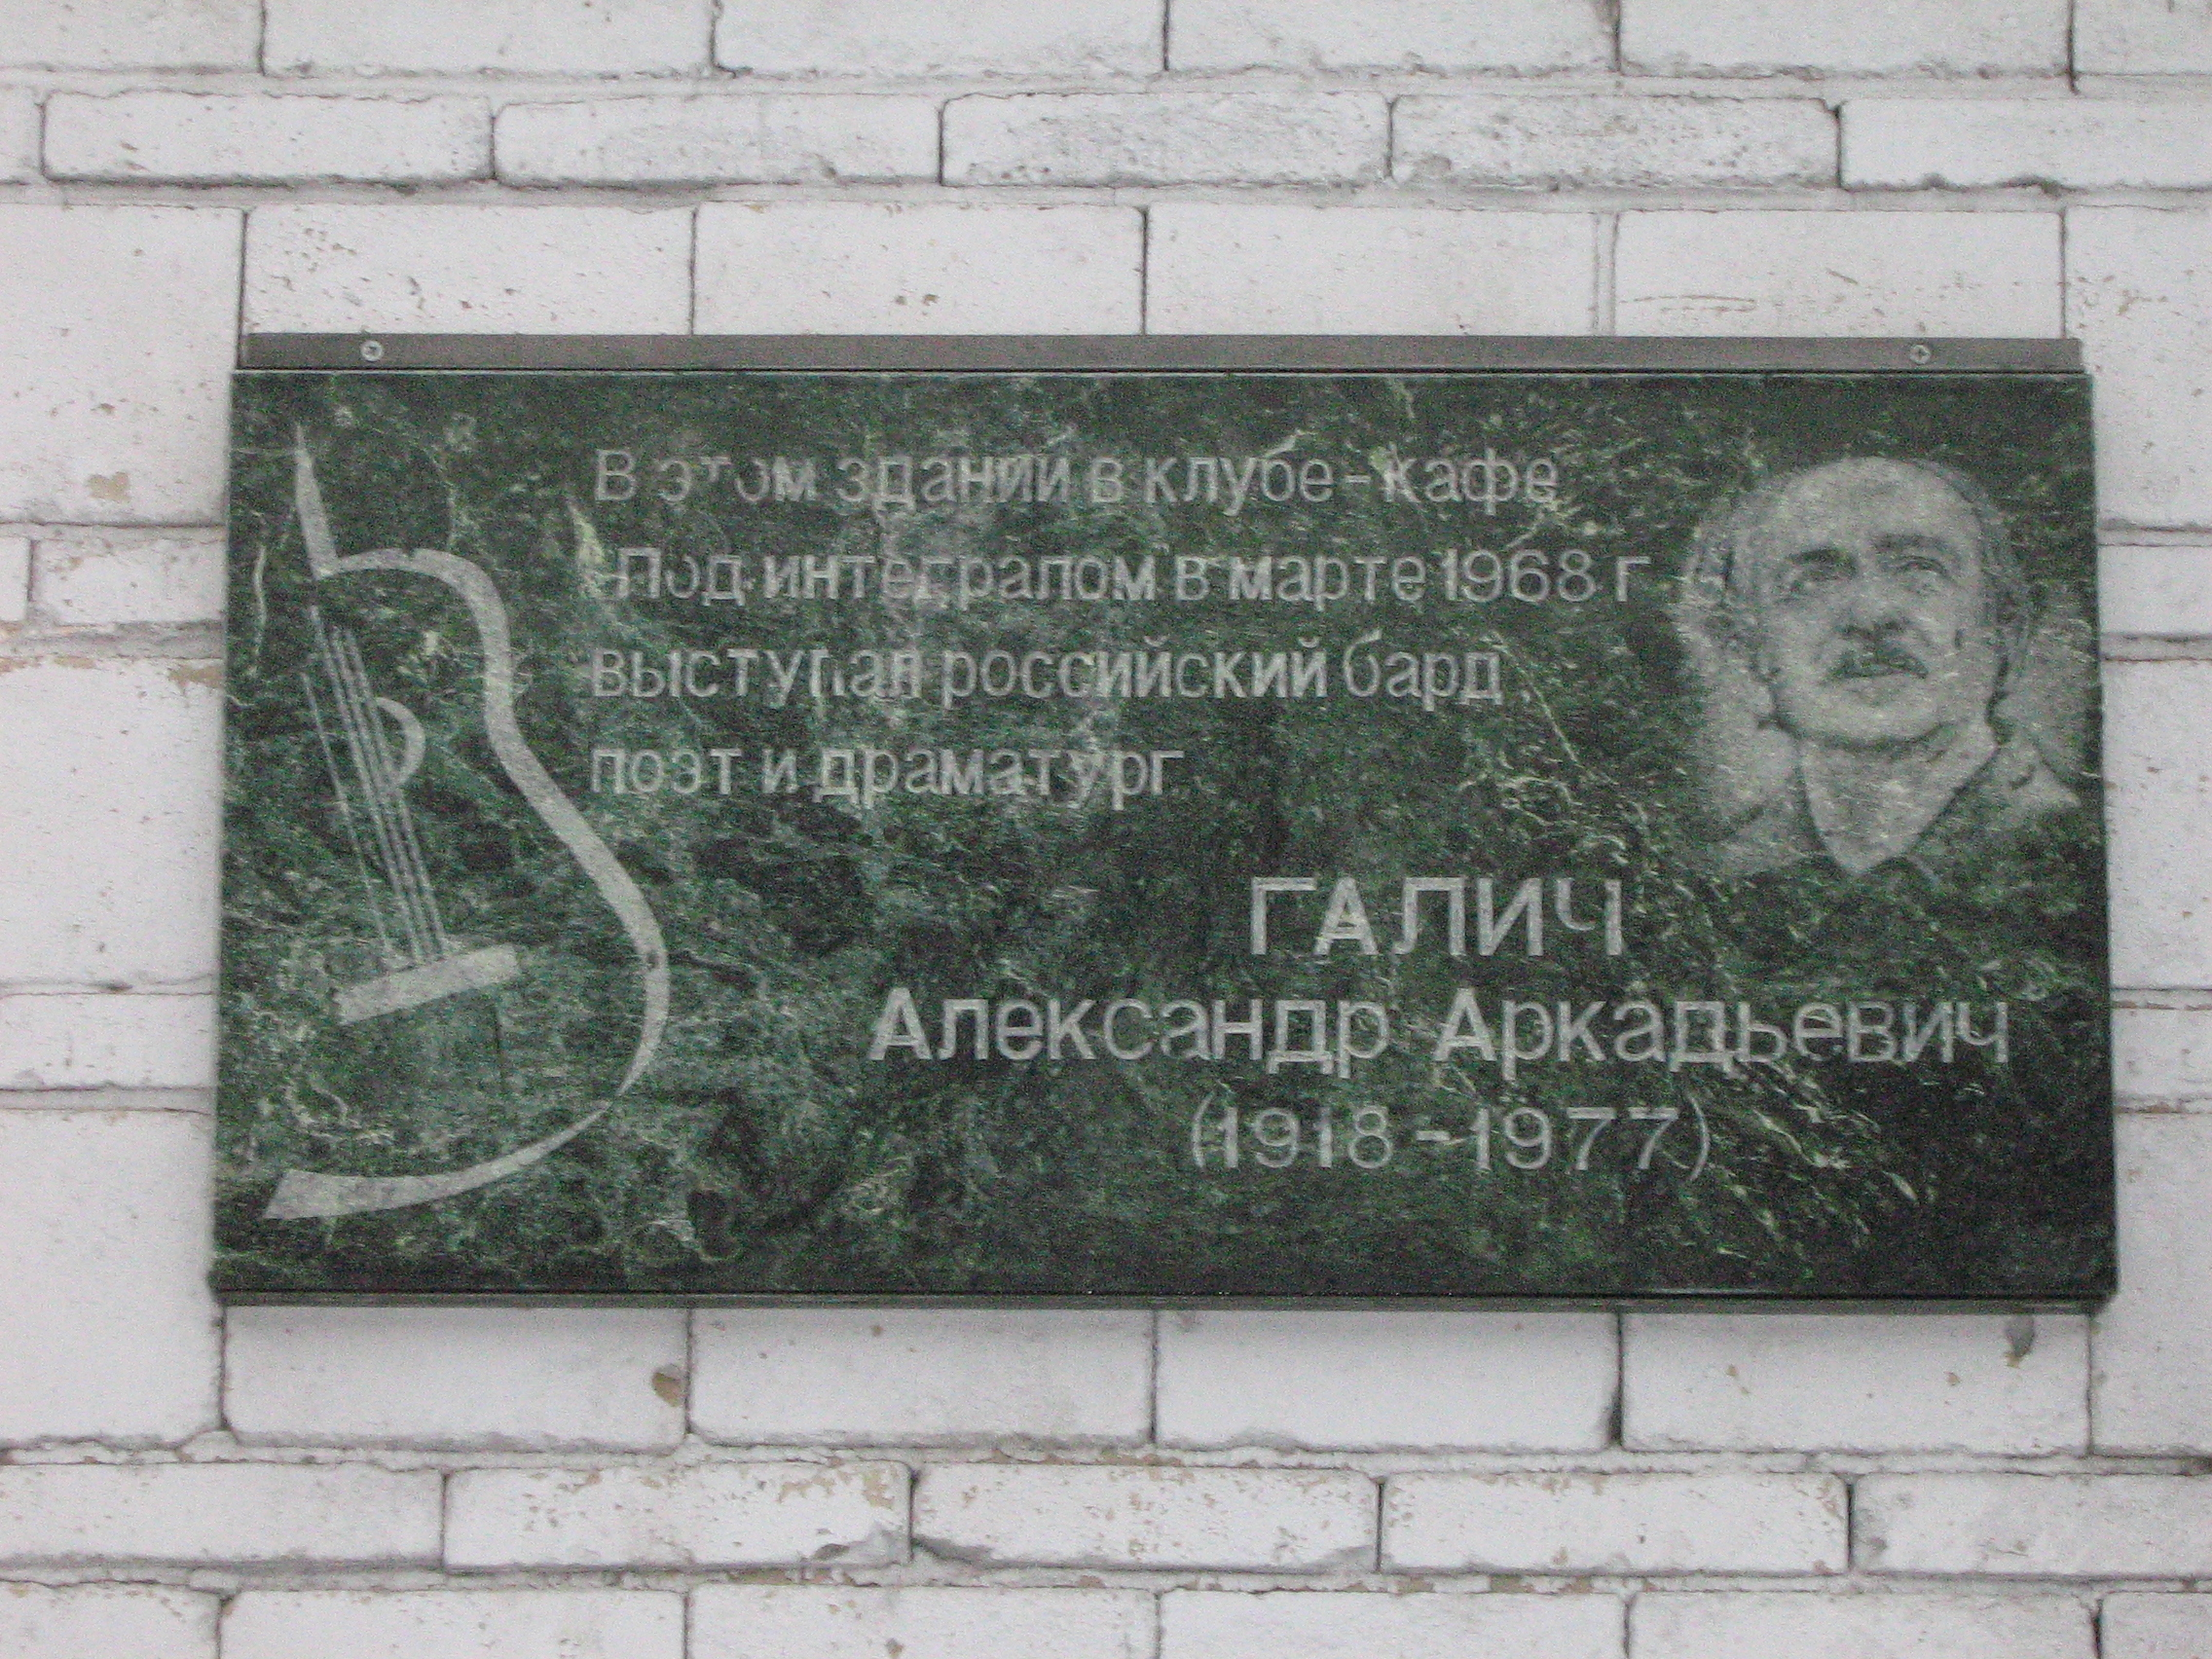 Memorial plaque dedicated to A. Galich